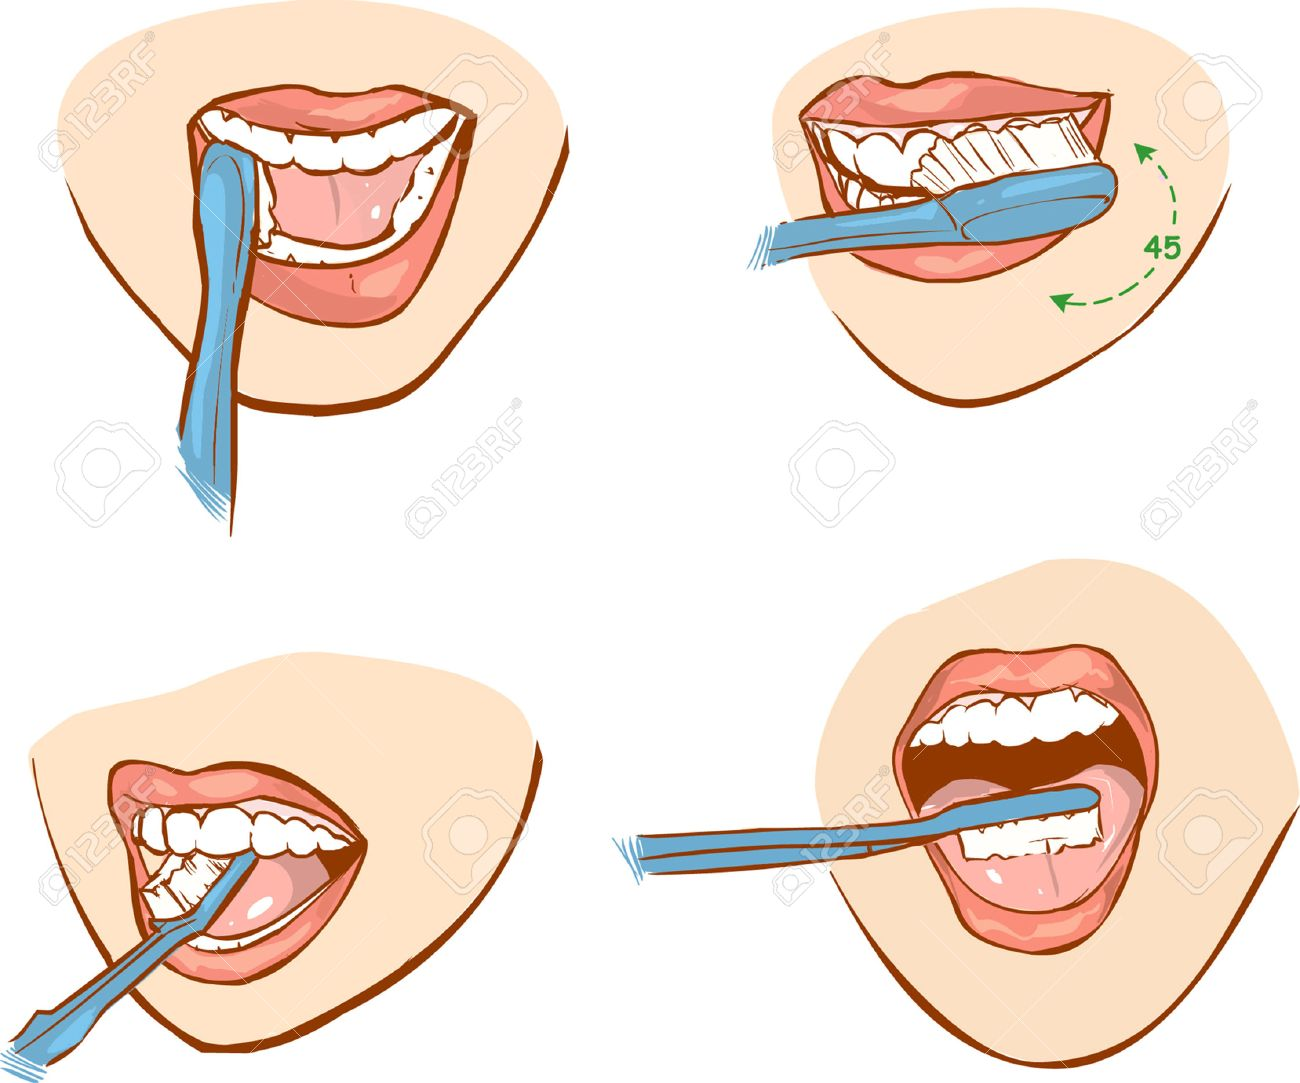 white backround vector illustration of a tooth brushing - 52746365